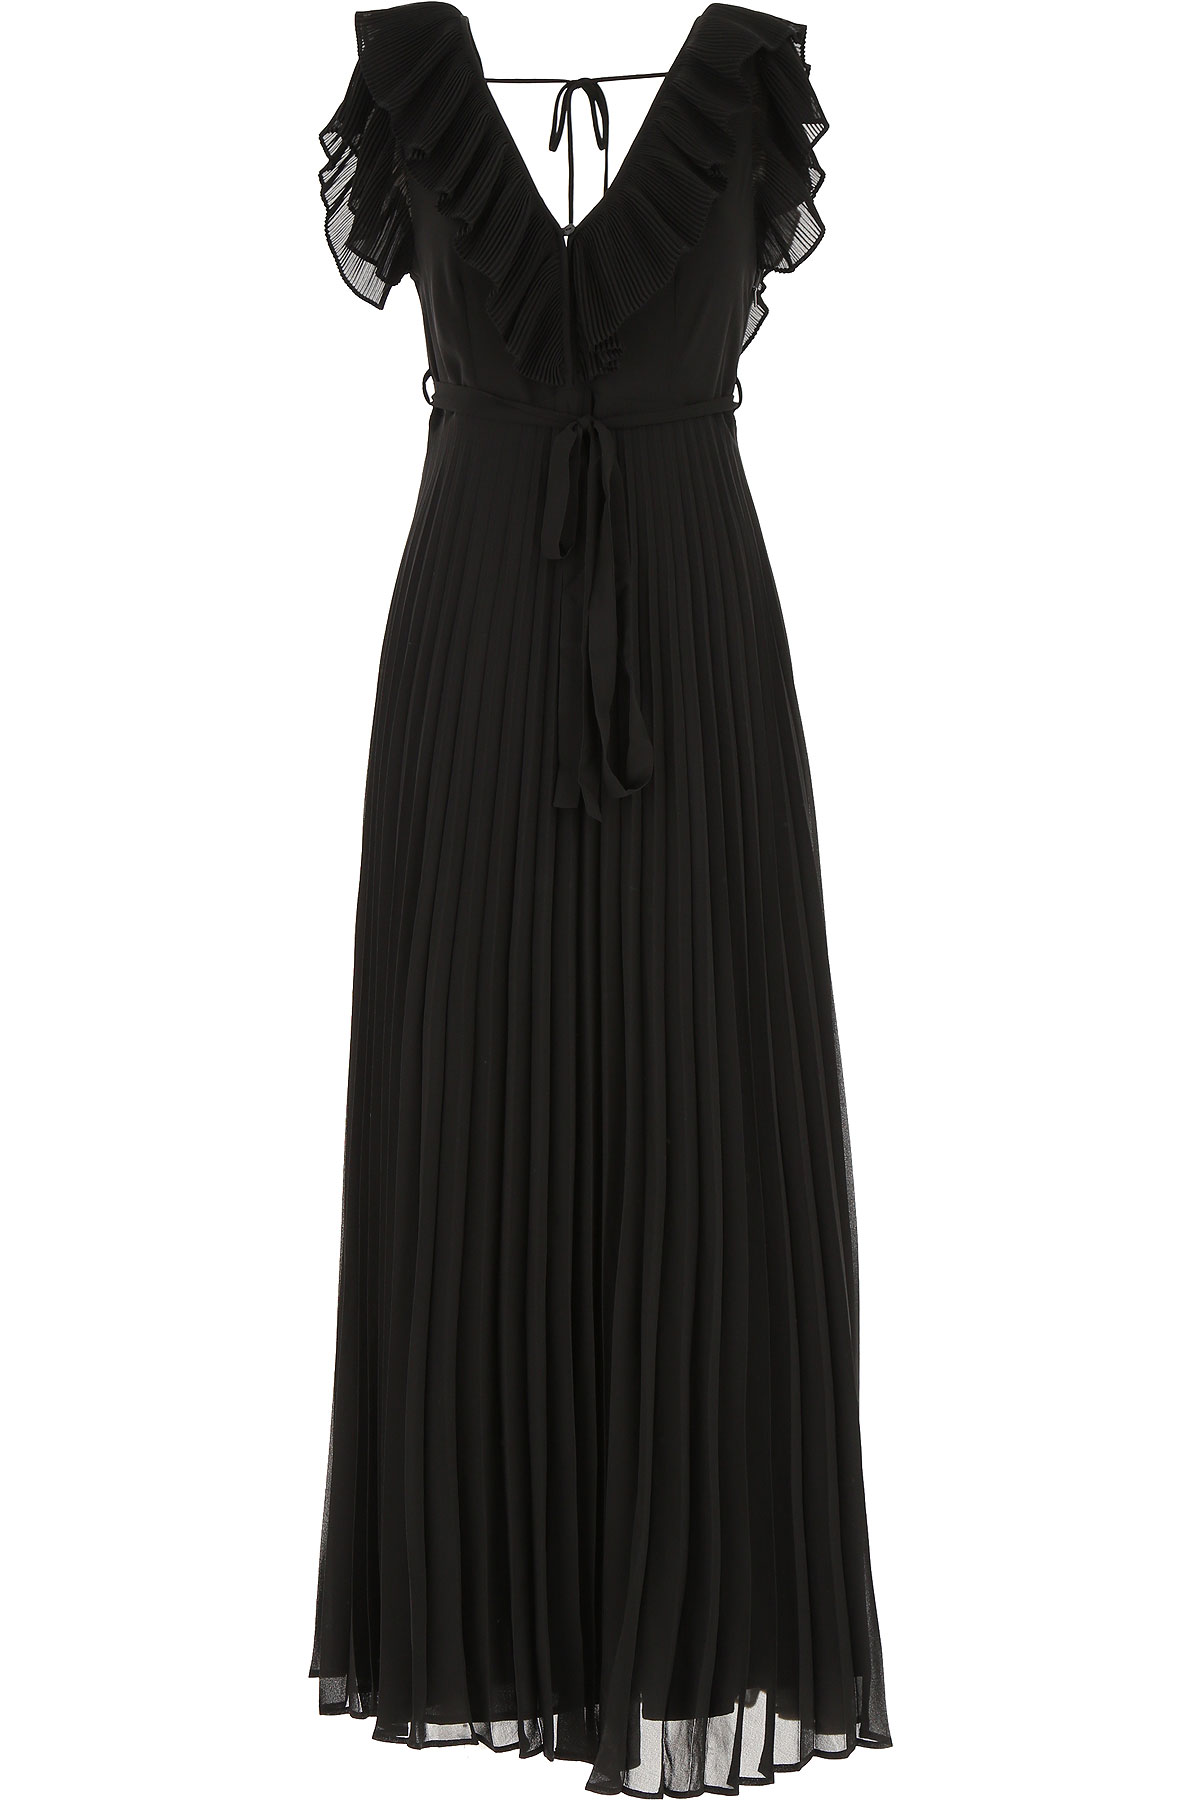 Twin Set by Simona Barbieri Dress for Women, Evening Cocktail Party On Sale, Black, polyestere, 2019, 4 6 8